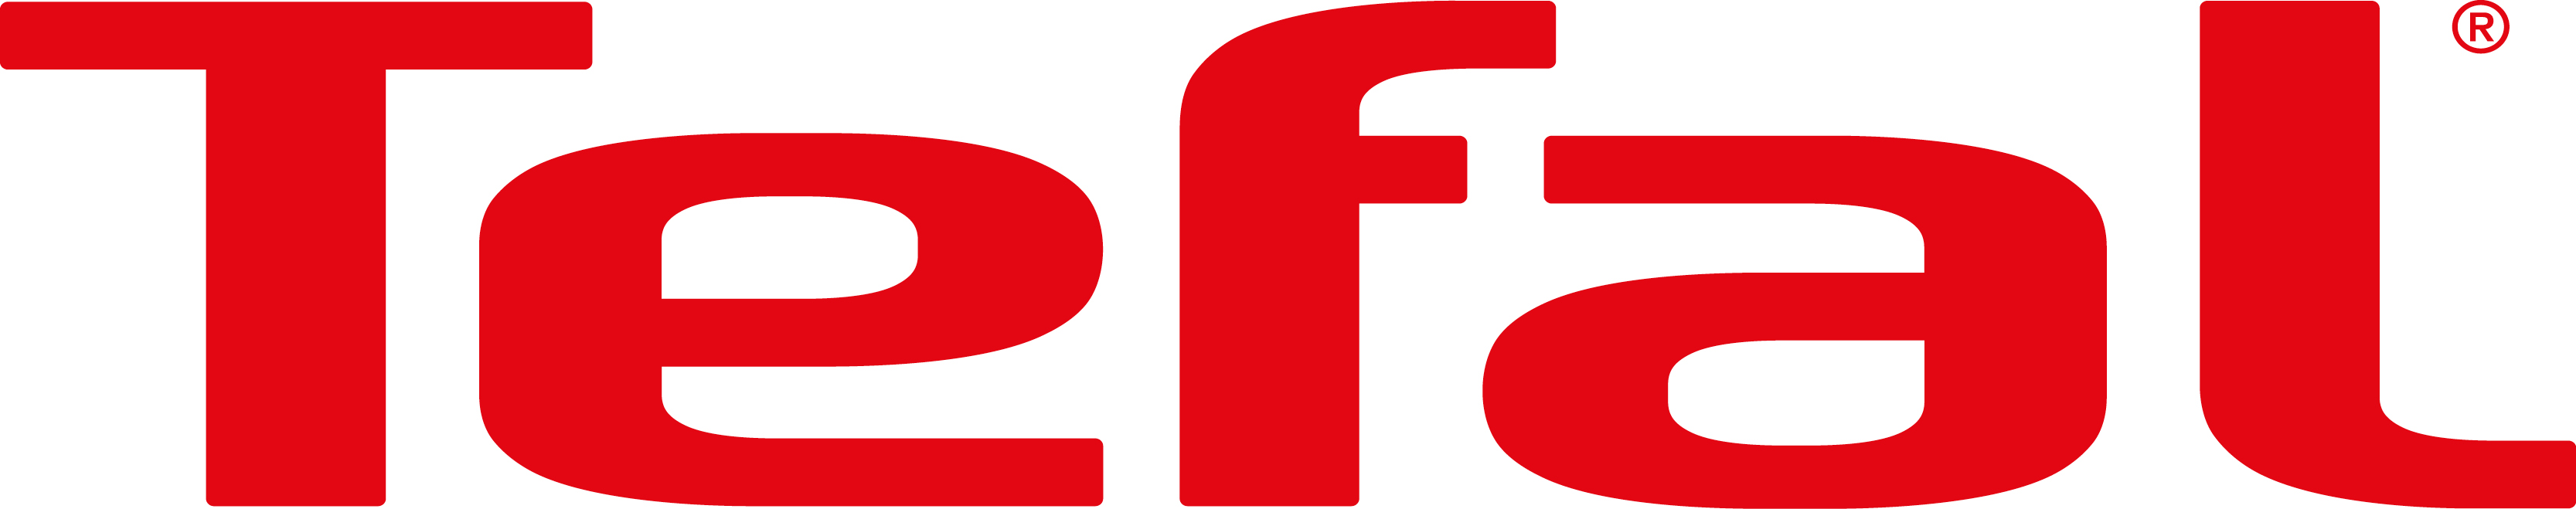 1915 Tefal SuperValue Logo